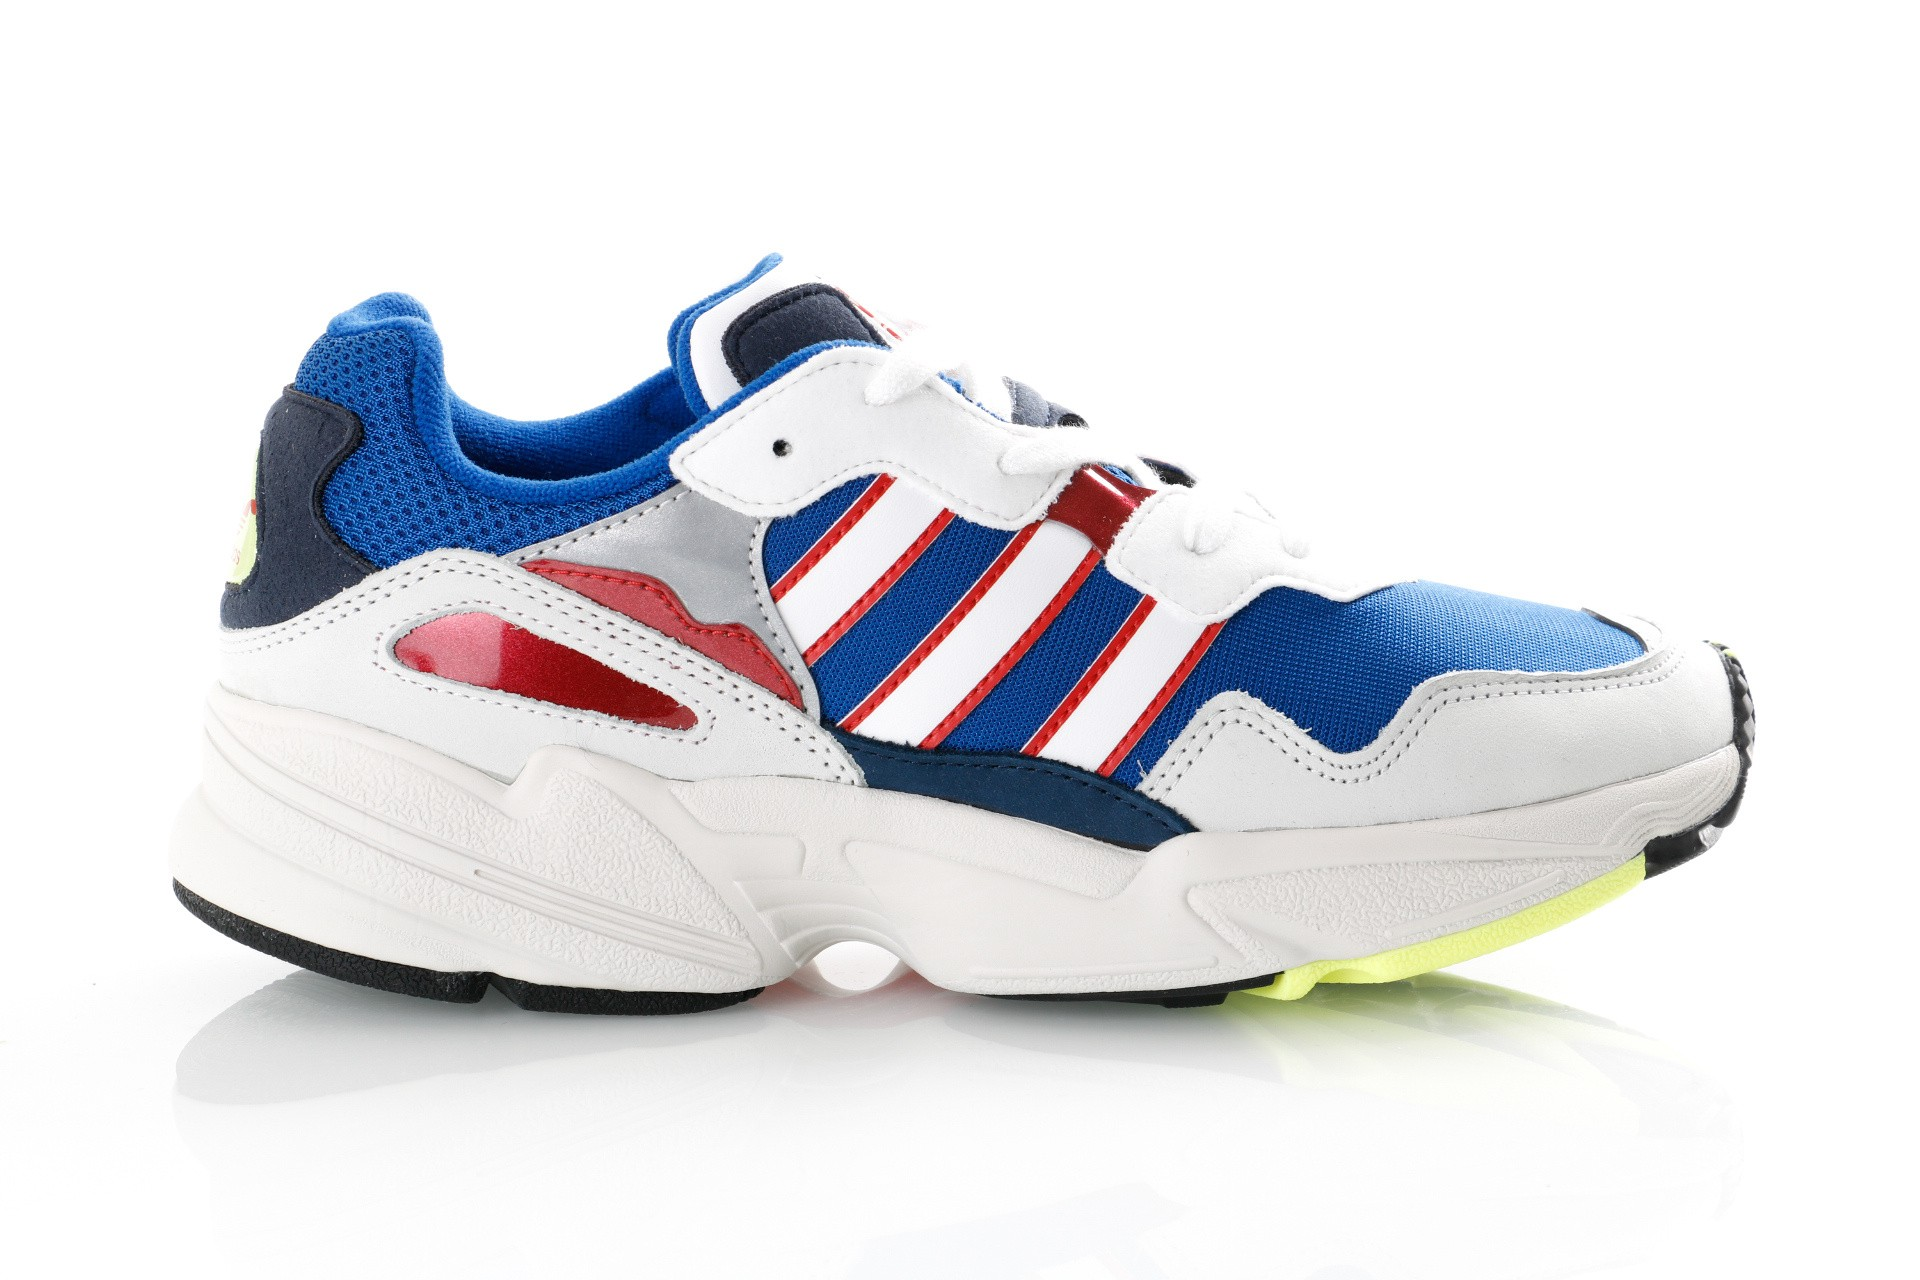 Foto van Adidas Yung-96 Db3564 Sneakers Collegiate Royal/Ftwr White/Collegiate Navy